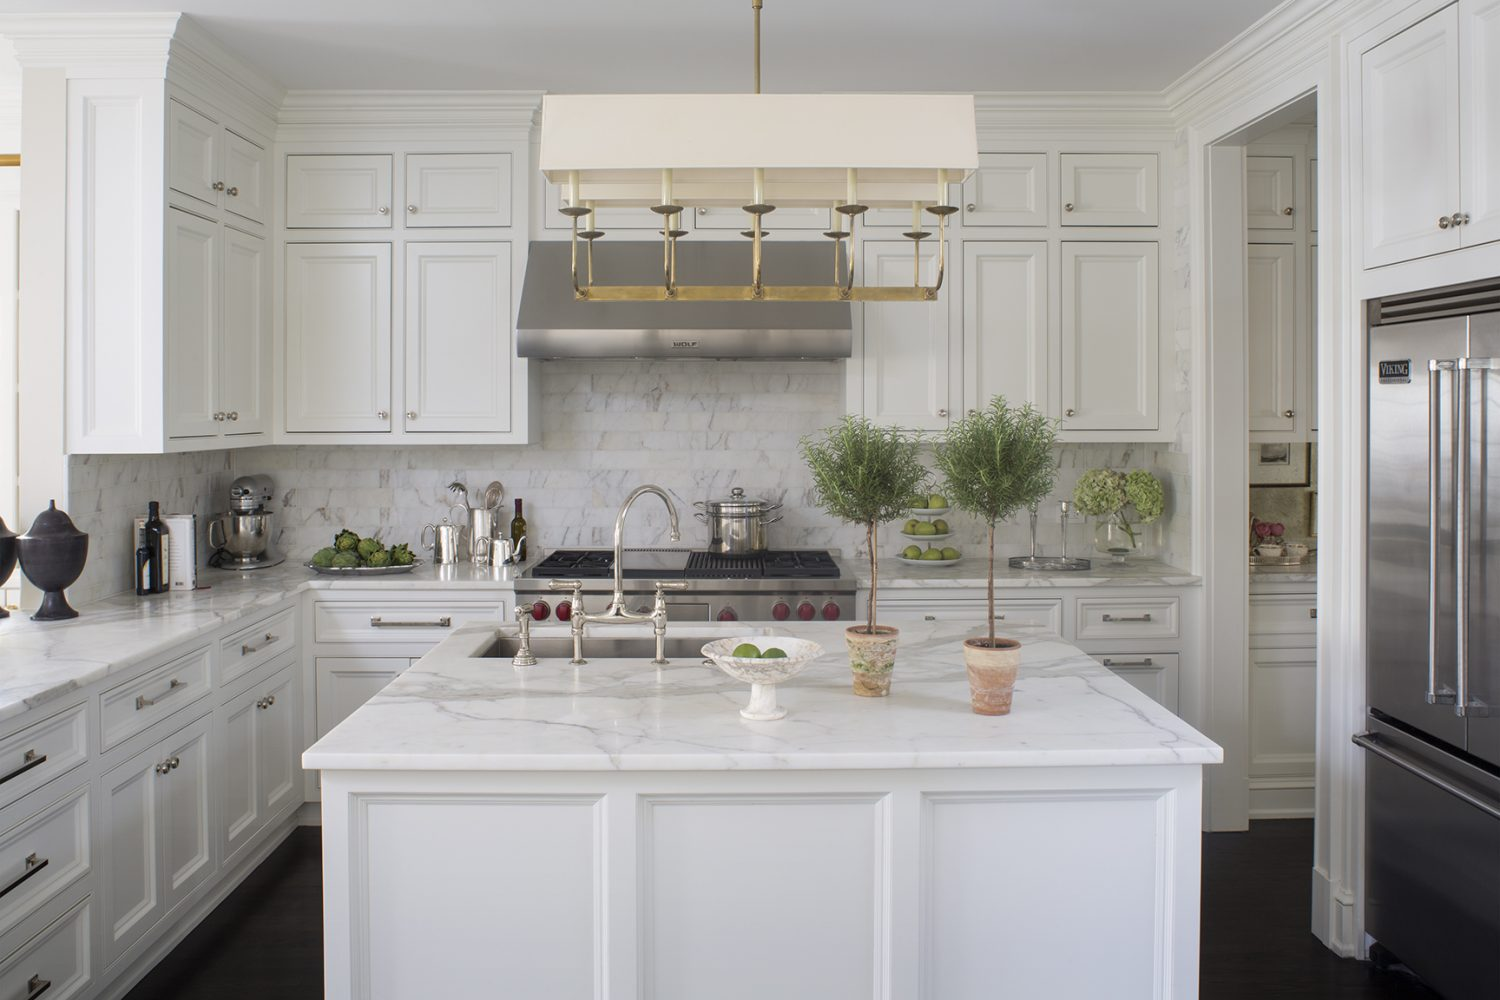 wendy labrum Wendy Labrum Interiors: A Passion Born in Europe KitchenWide V2 LR scaled